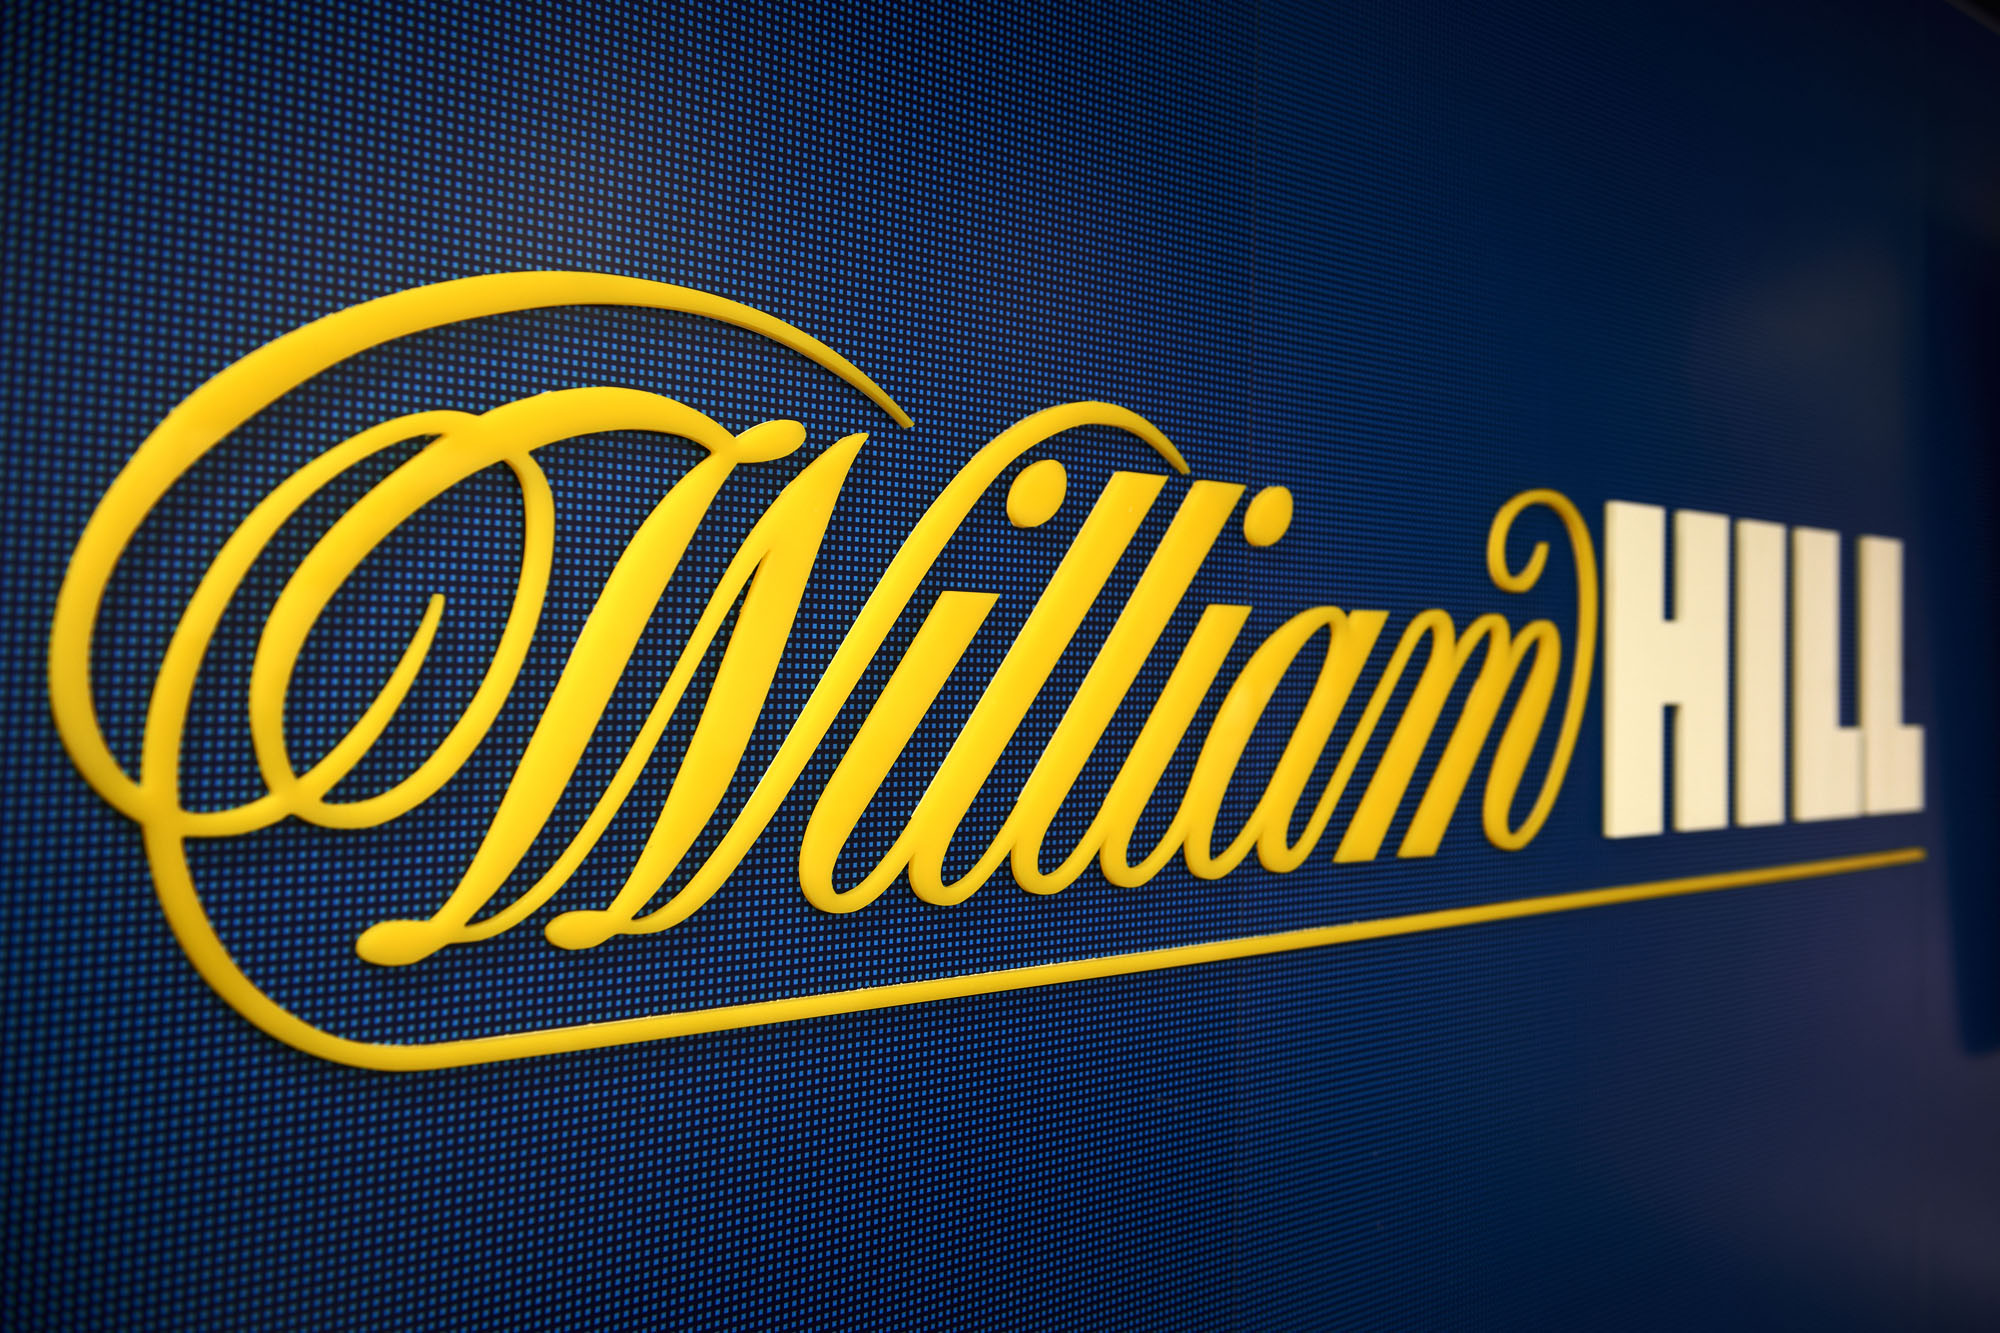 william hill online casino champions football